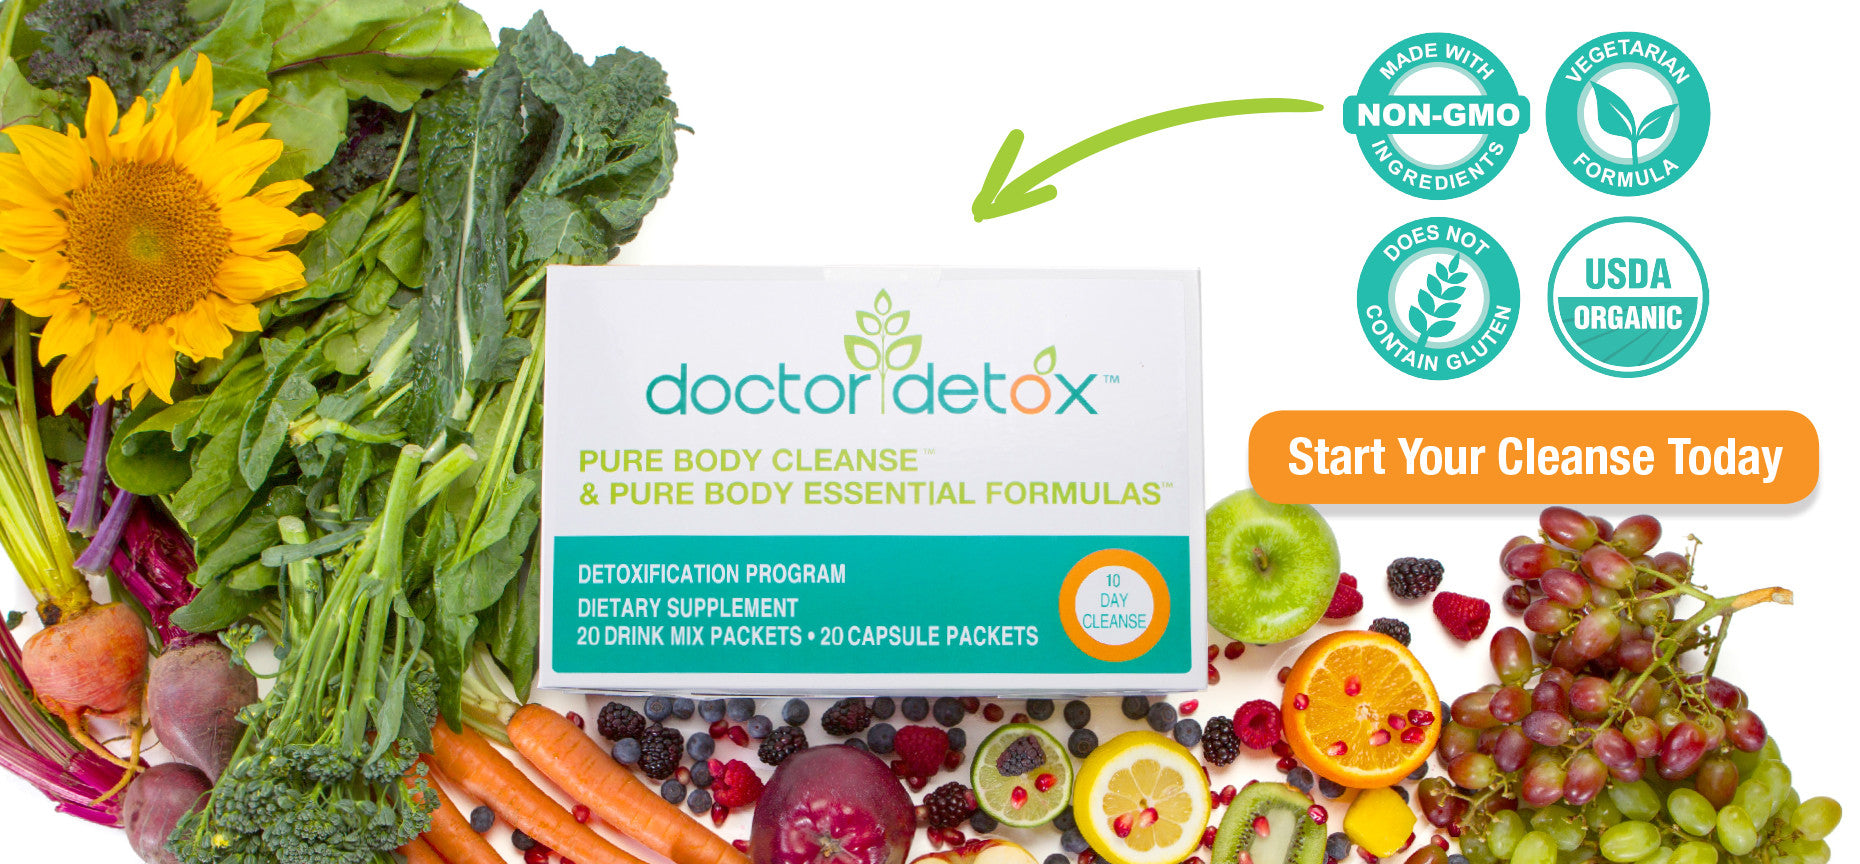 Doctor Detox Cleanse